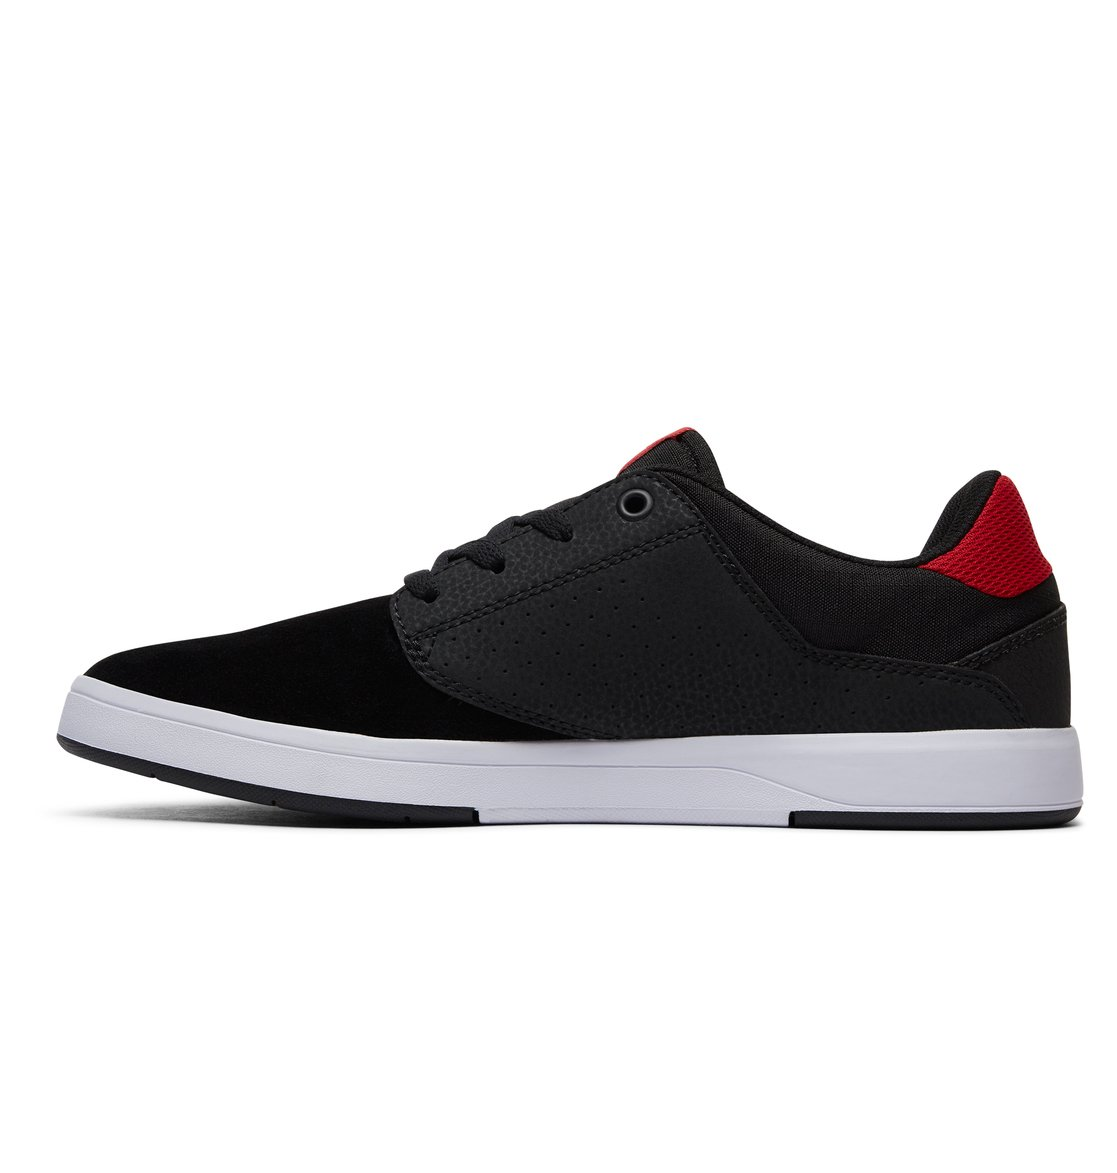 Chaussures DC Plaza Tc S Black Athletic Red Bah